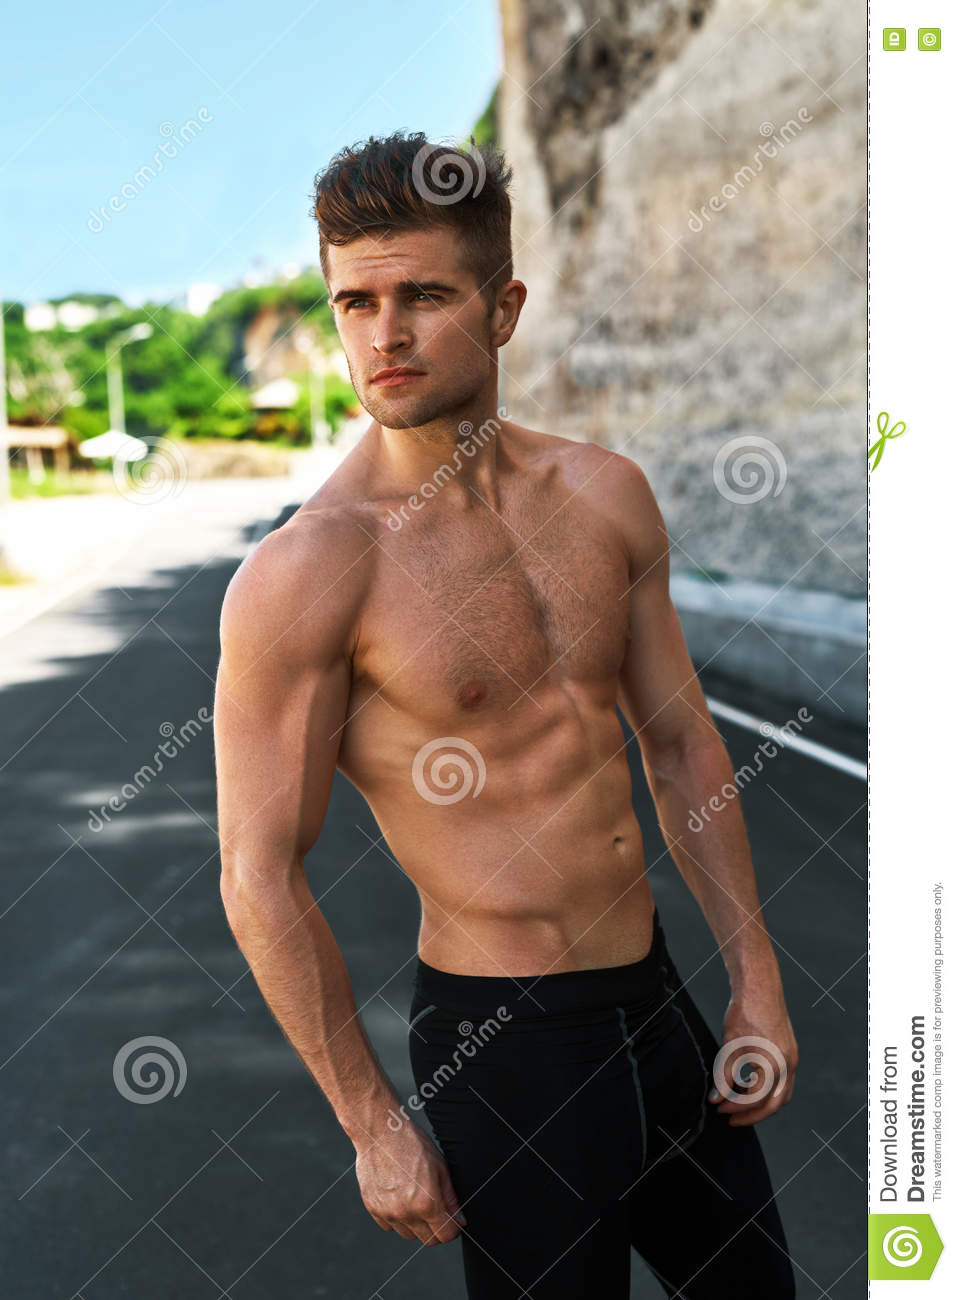 men male body Fit